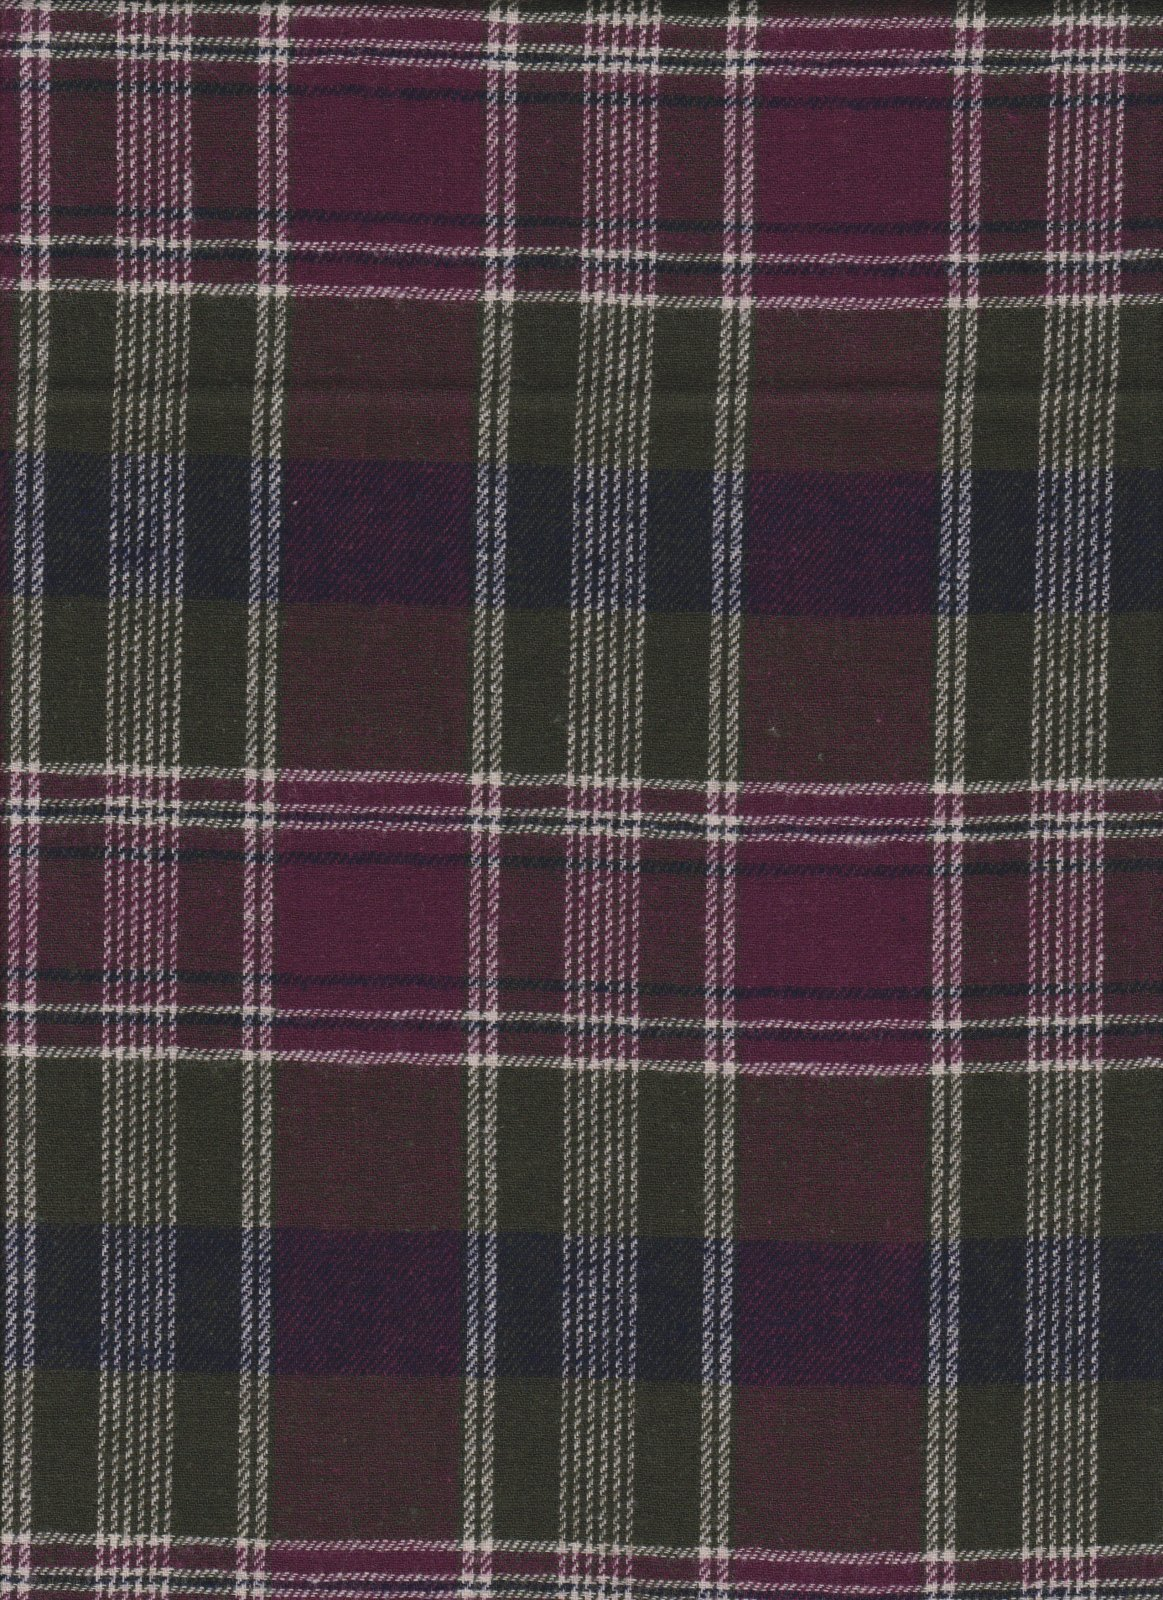 PROMO* Yarn Dyed Flannel Plaid - 6950 Madison Plum